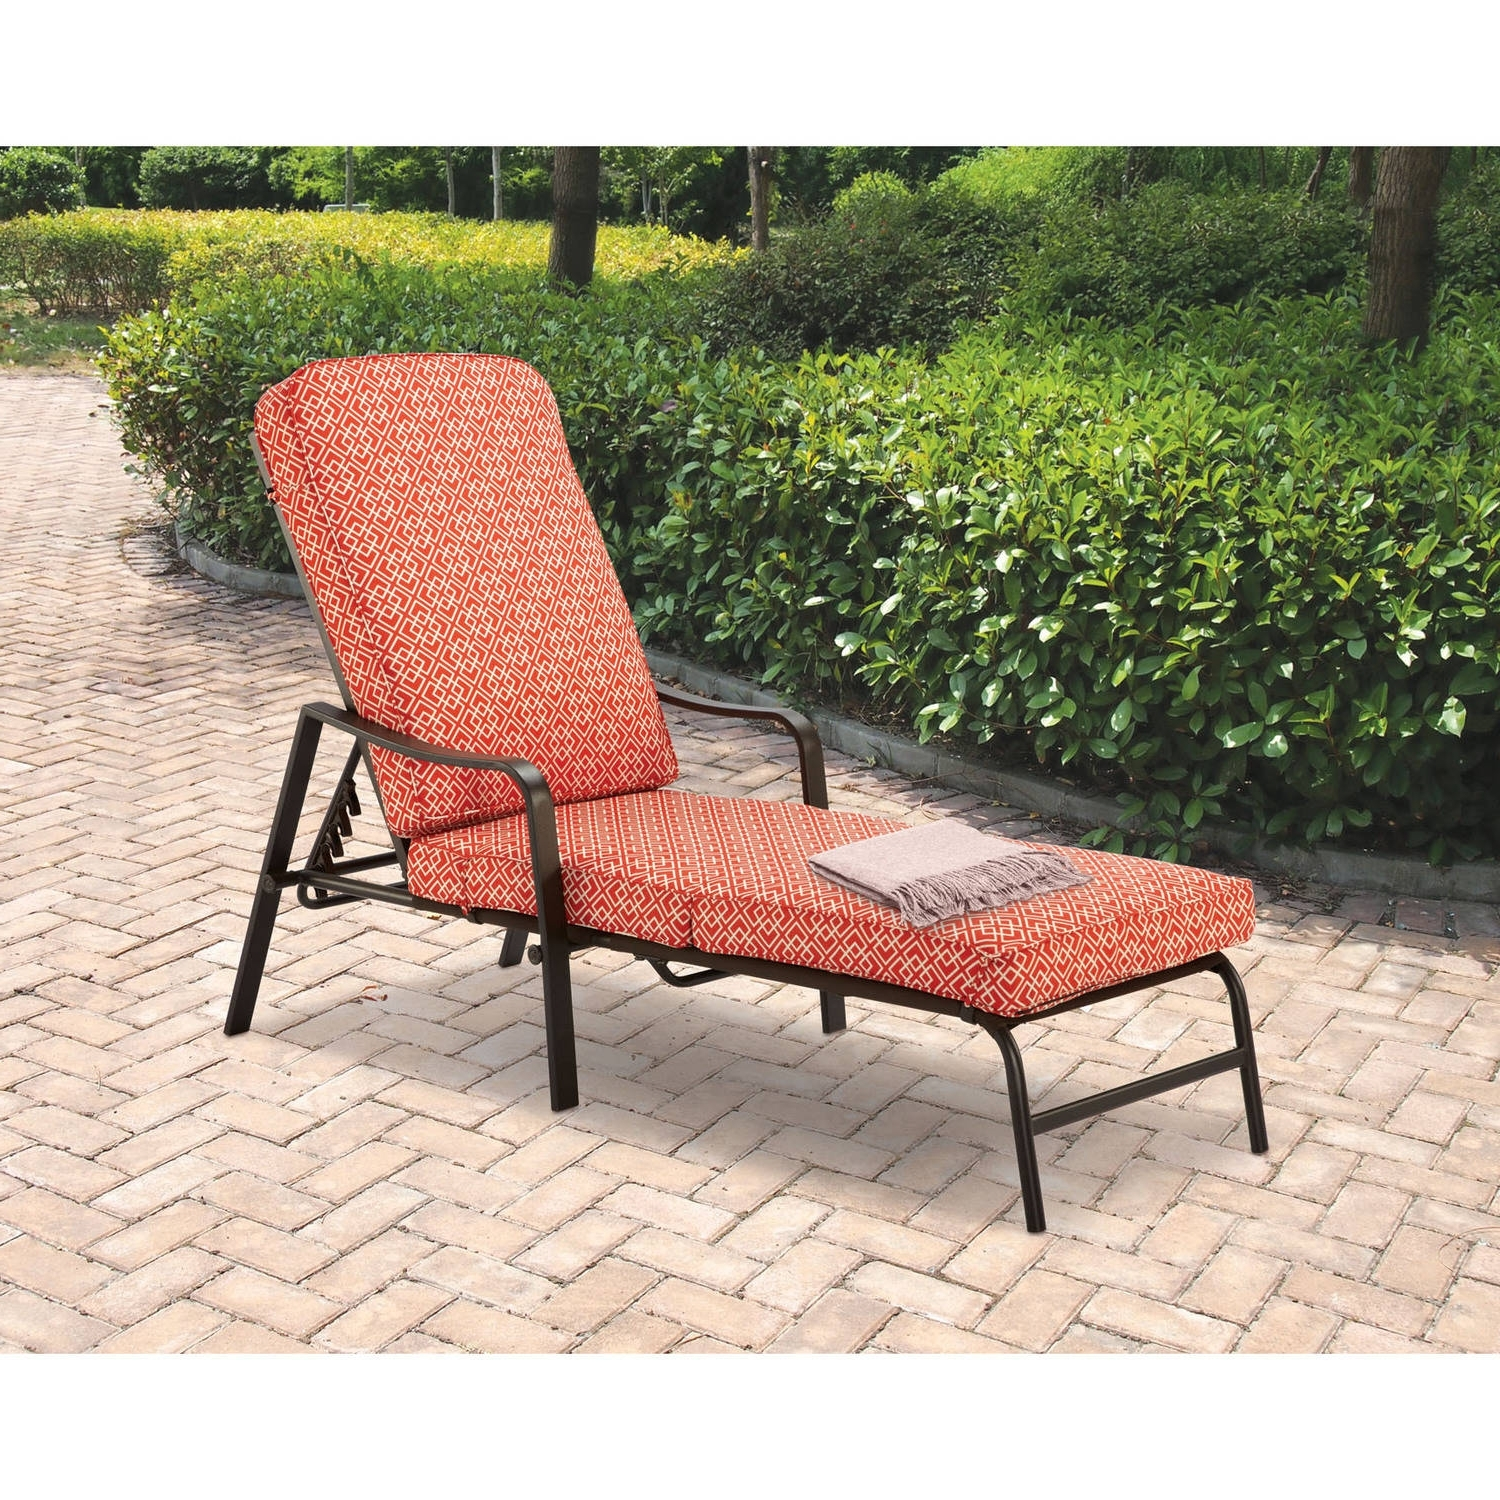 Mainstays Outdoor Chaise Lounge, Orange Geo Pattern – Walmart Throughout Latest Chaise Lounge Chair Outdoor Cushions (View 9 of 15)